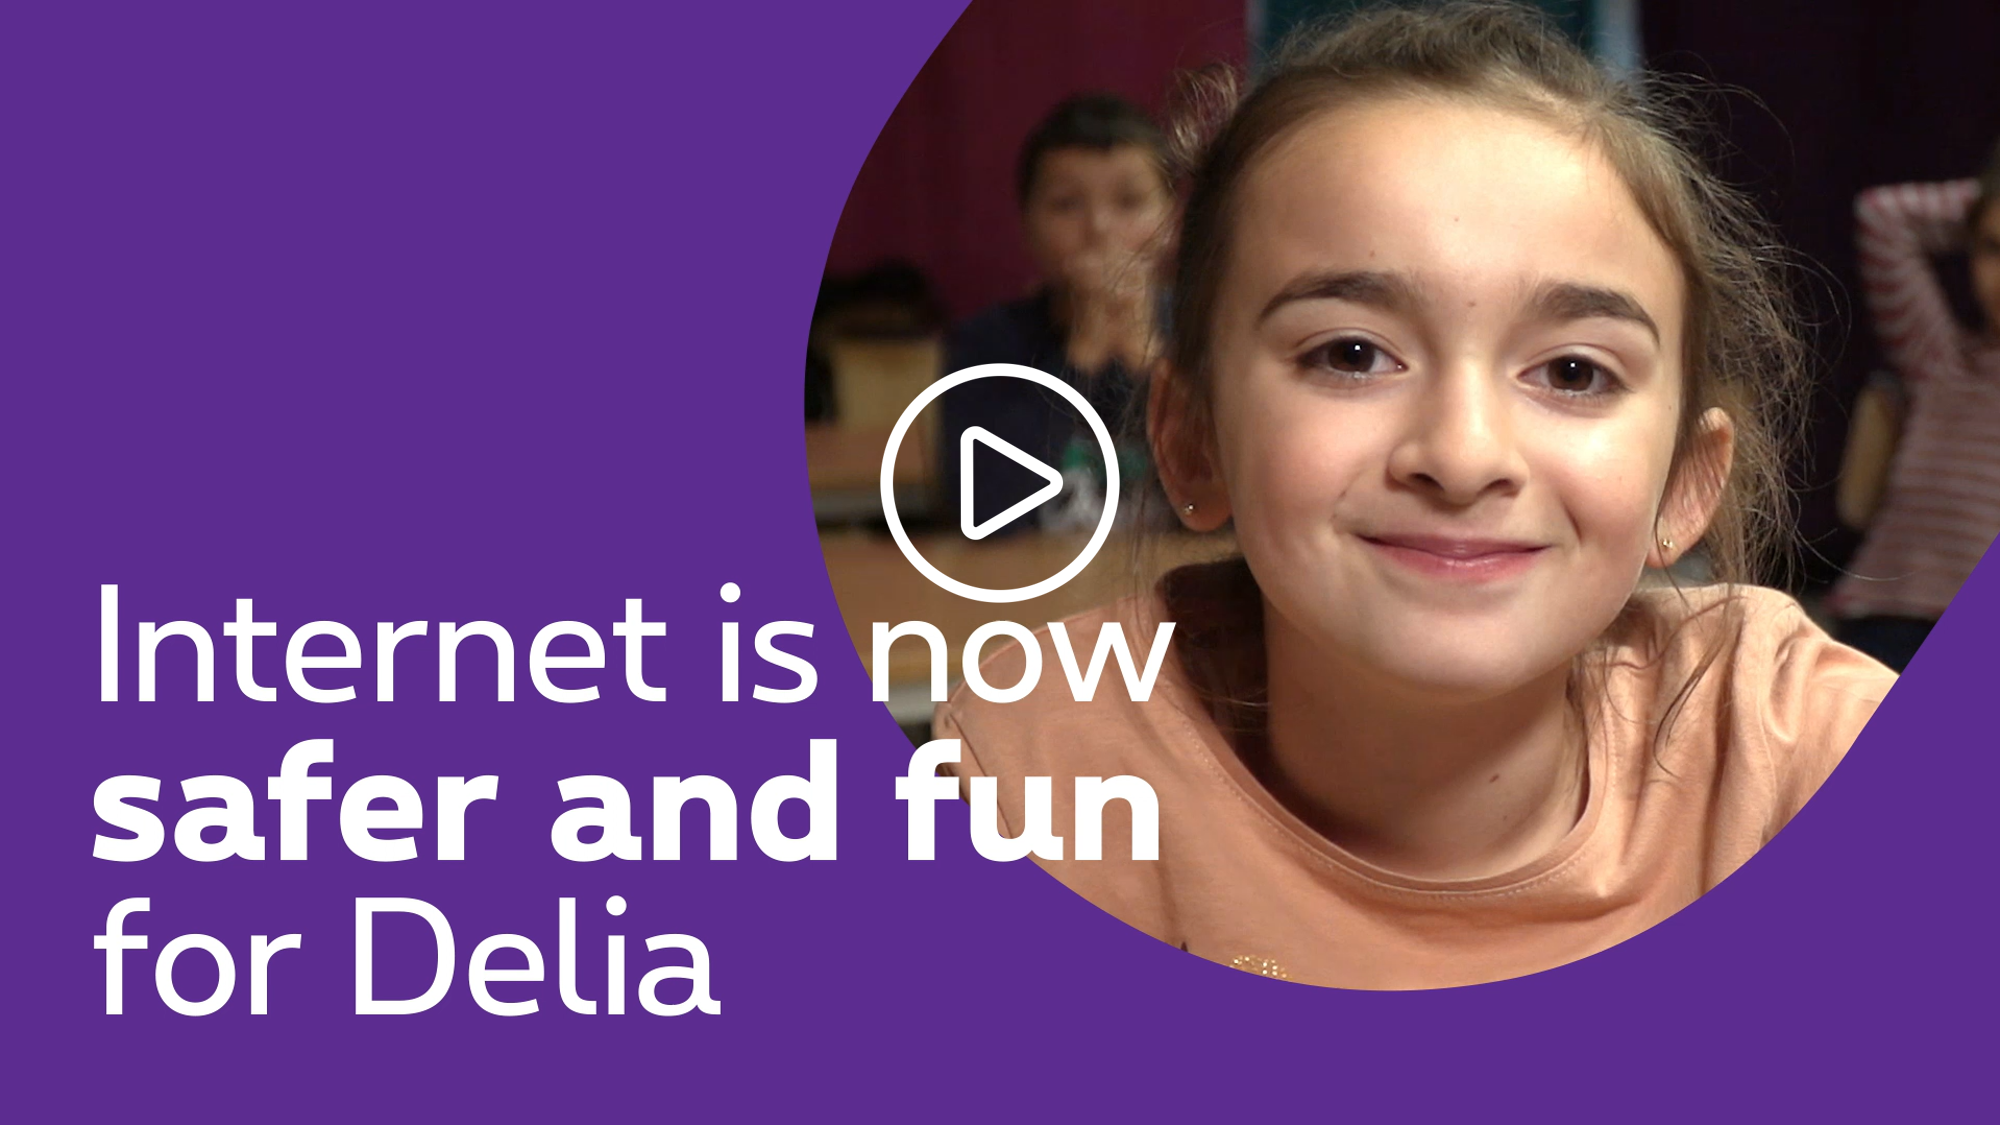 Internet is now safe and fun for Delia - click to discover the video